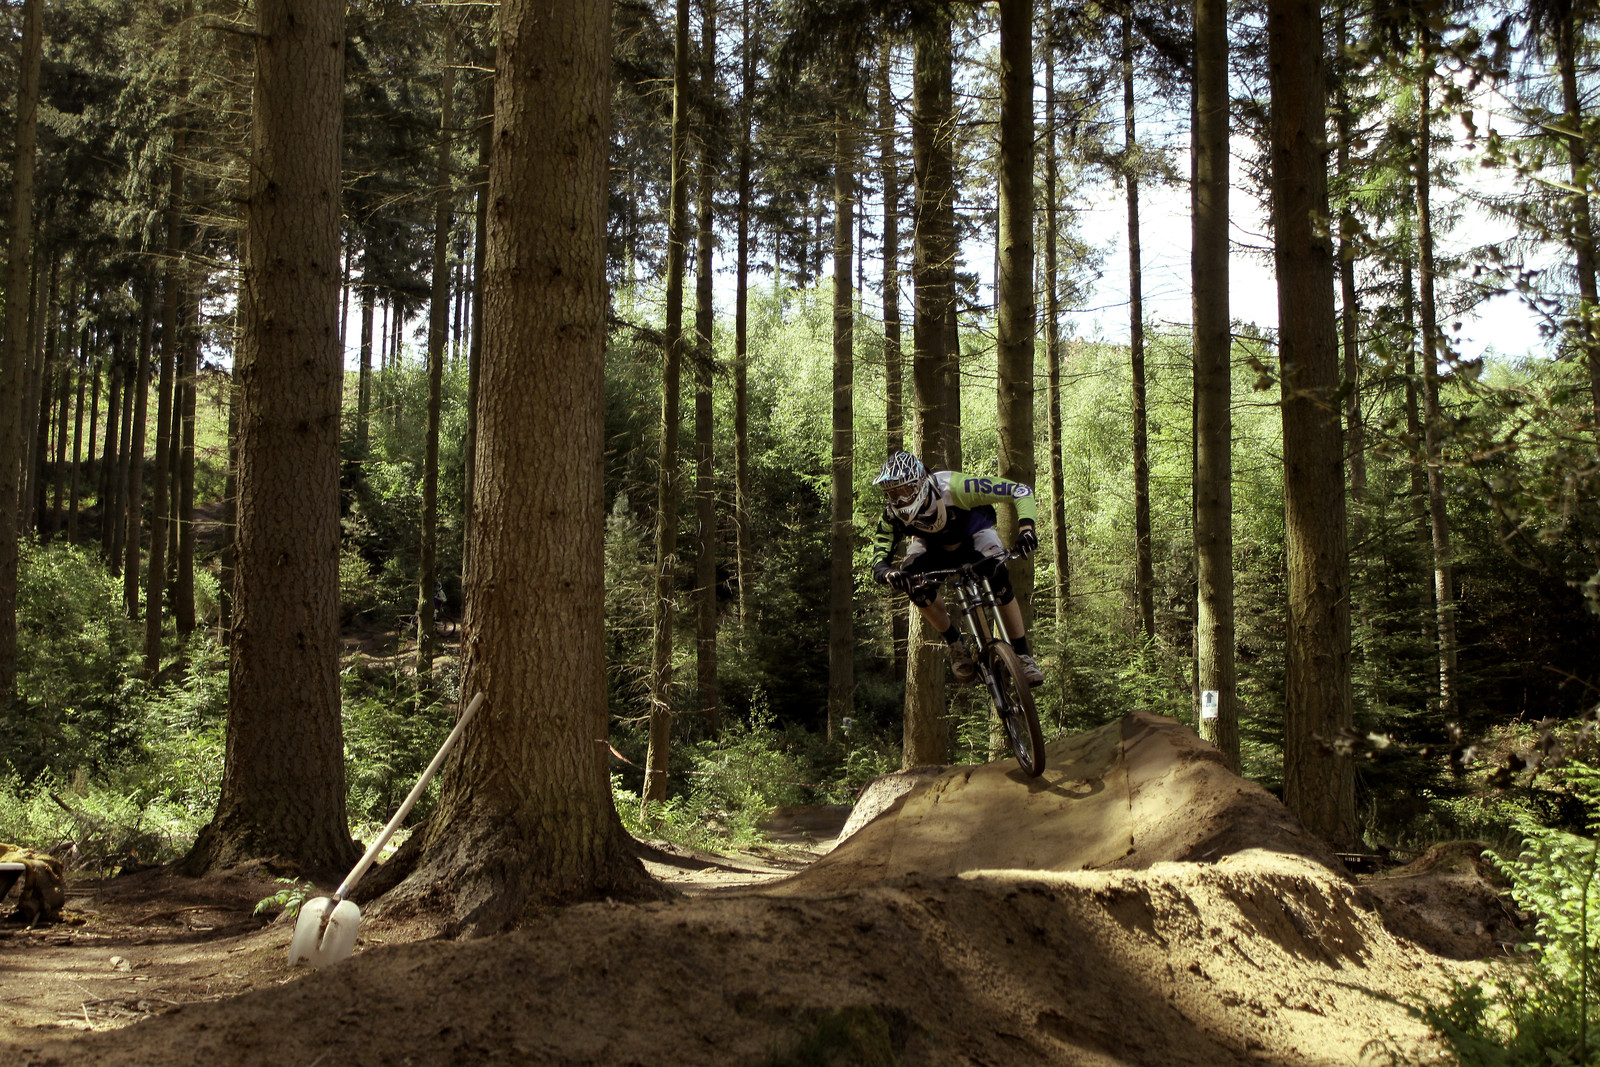 Dave Harvey - bikematter - Mountain Biking Pictures - Vital MTB